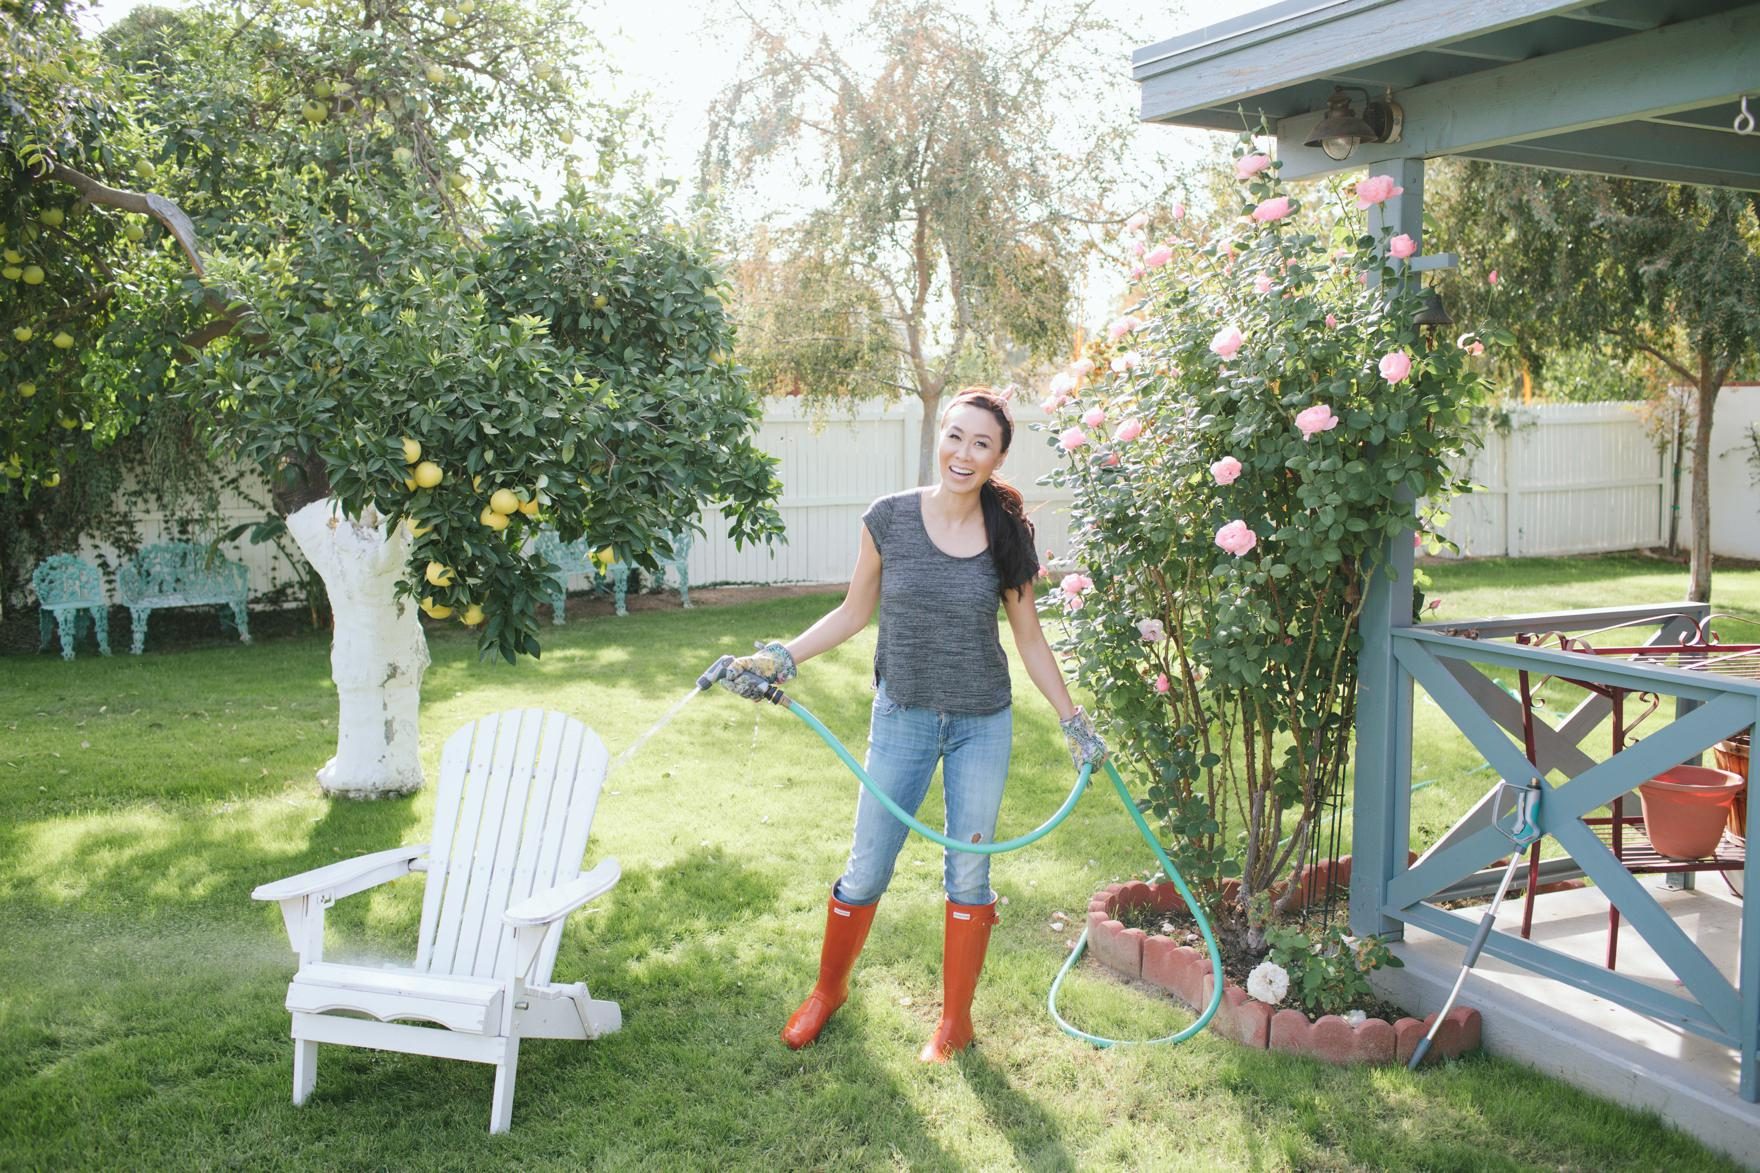 clean outside of your home windows brick stucco and concrete patio and driveway with Gilmour spray hose and pressure washer featuring Diana Elizabeth lifestyle garden blogger